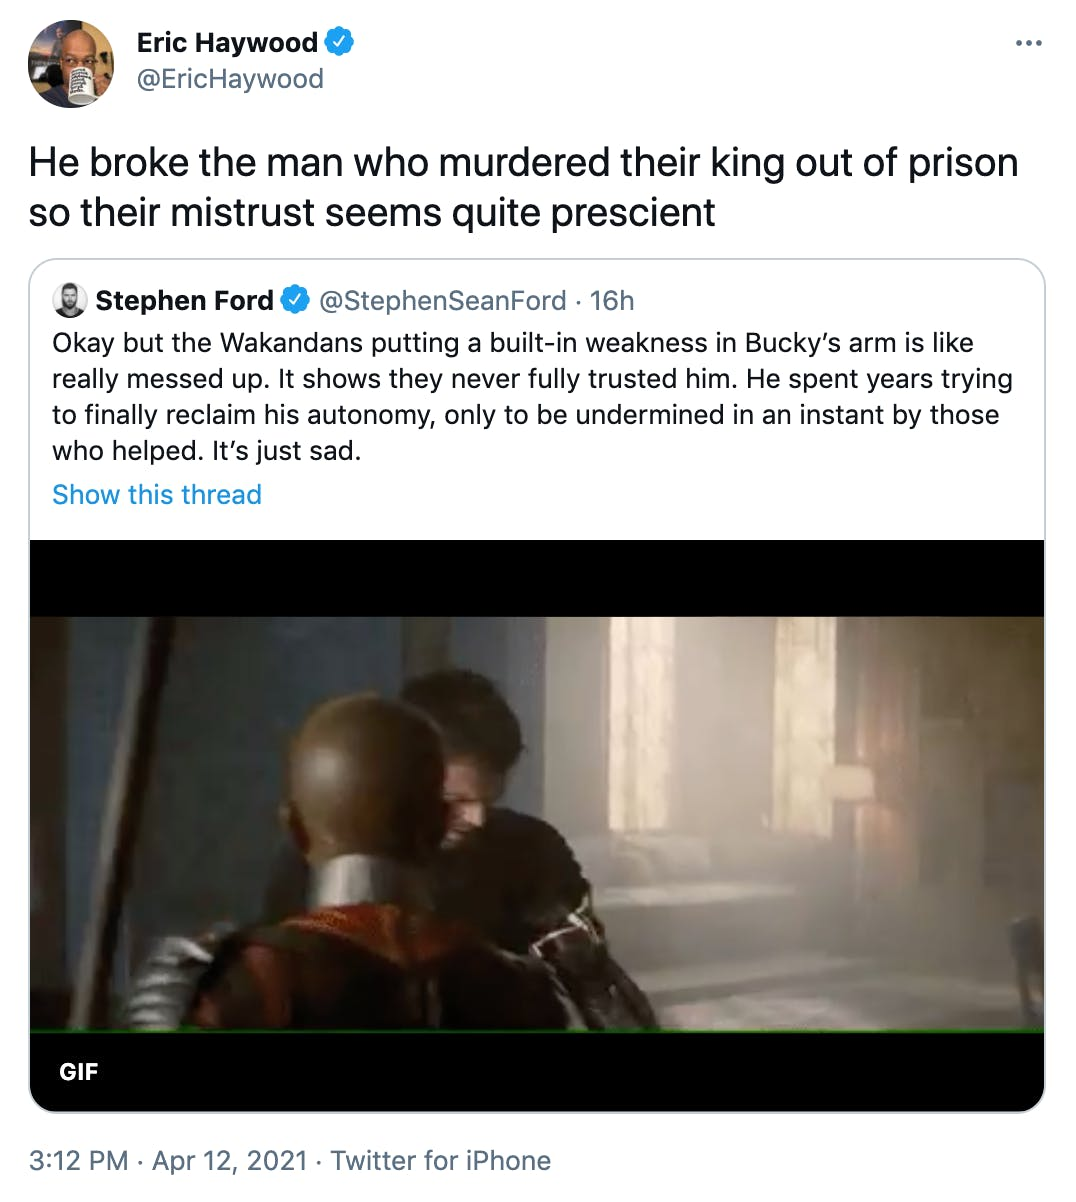 He broke the man who murdered their king out of prison so their mistrust seems quite prescient